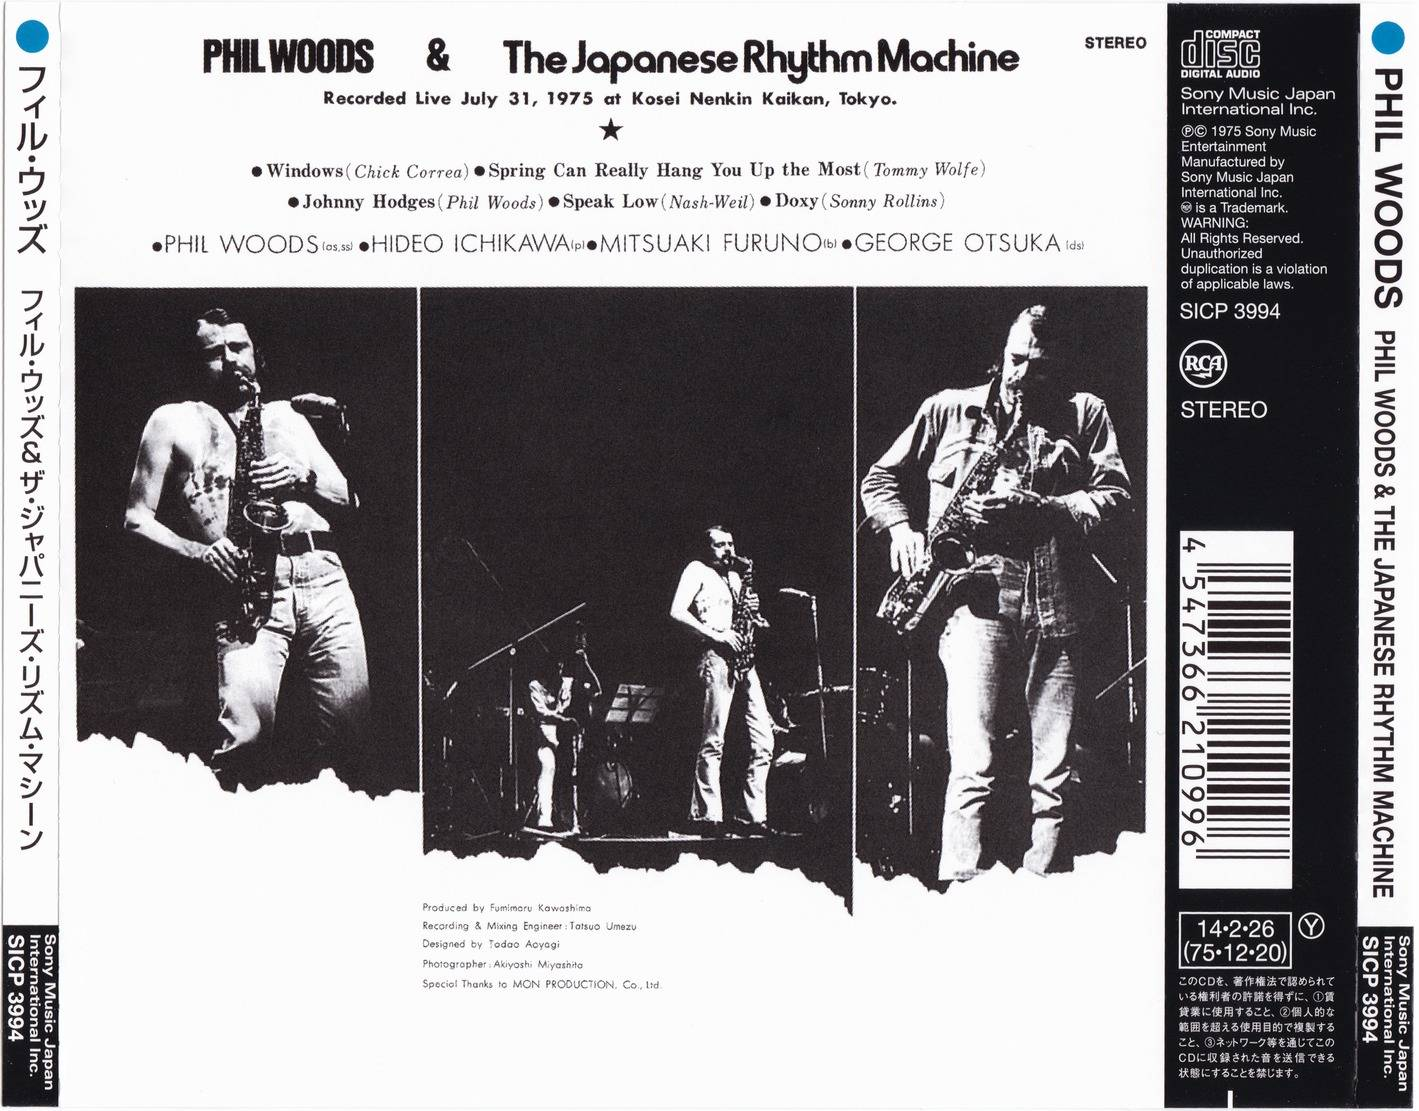 Phil Woods - Phil Woods & The Japanese Rhythm Machine (1975) {2014 Japan Jazz Collection 1000 Columbia-RCA Series SICP 3994}